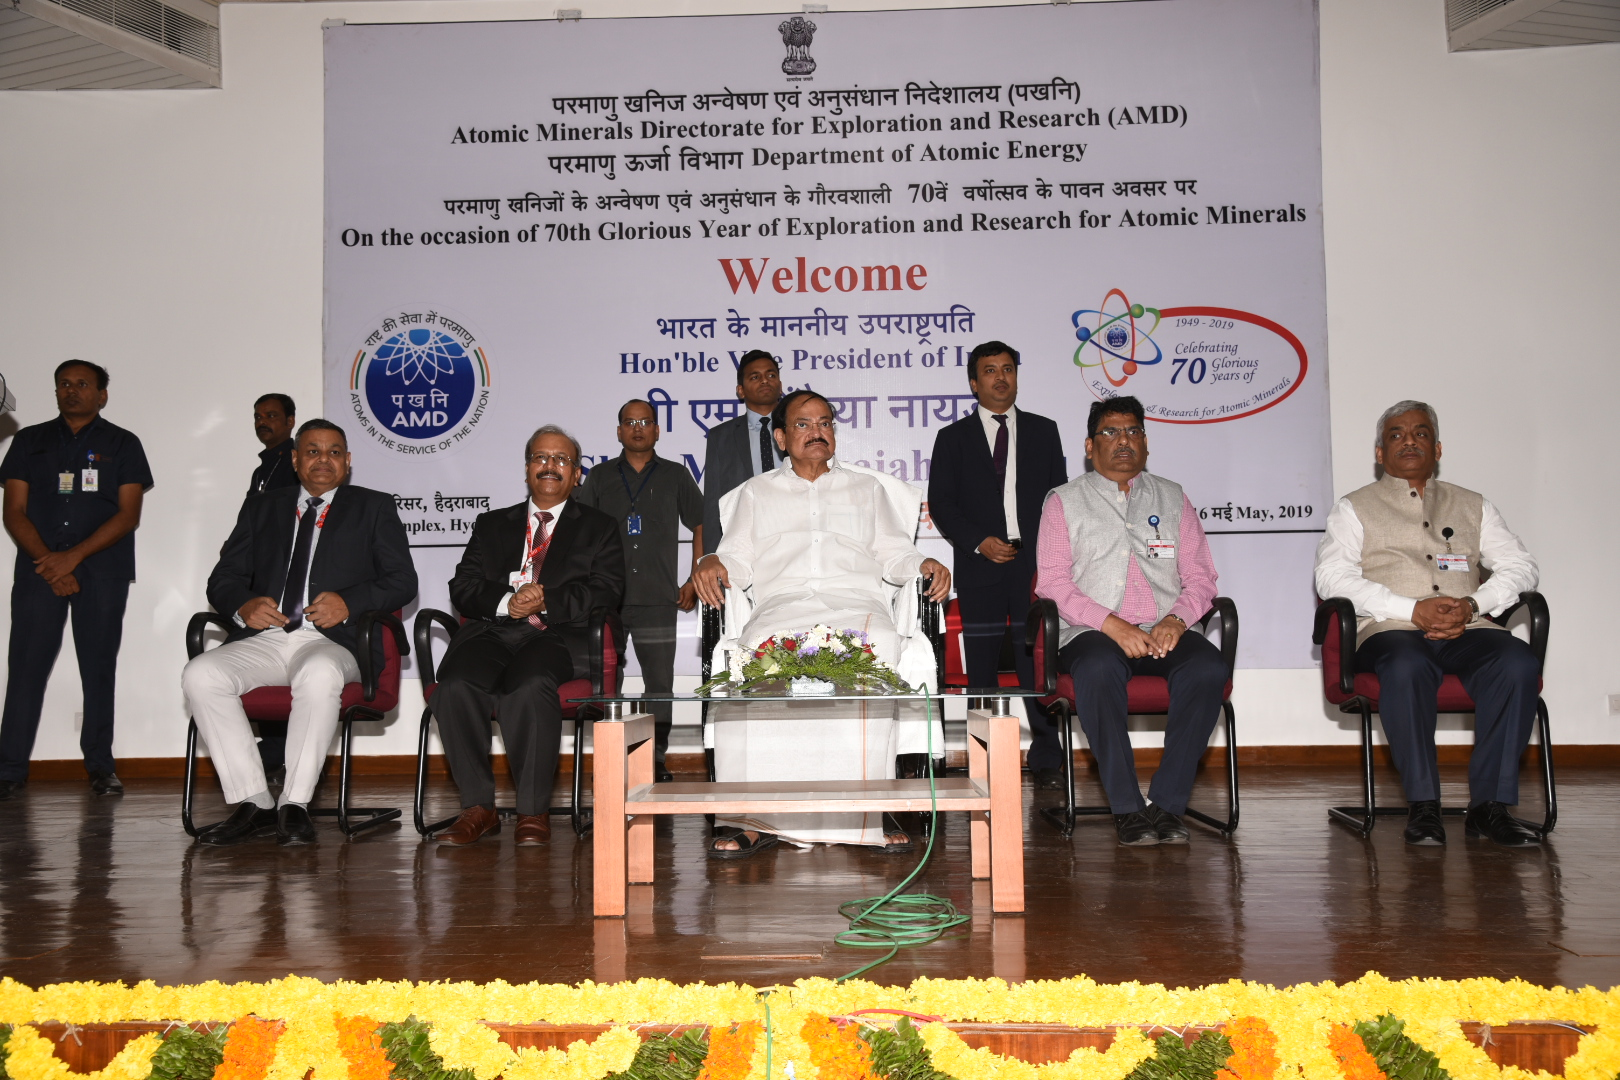 The Vice President, Shri M. Venkaiah Naidu at an event to commemorate 70th Year of Exploration and Research of Atomic Minerals, at the Atomic Minerals Directorate for Exploration and Research, in Hyderabad on May 16, 2019.